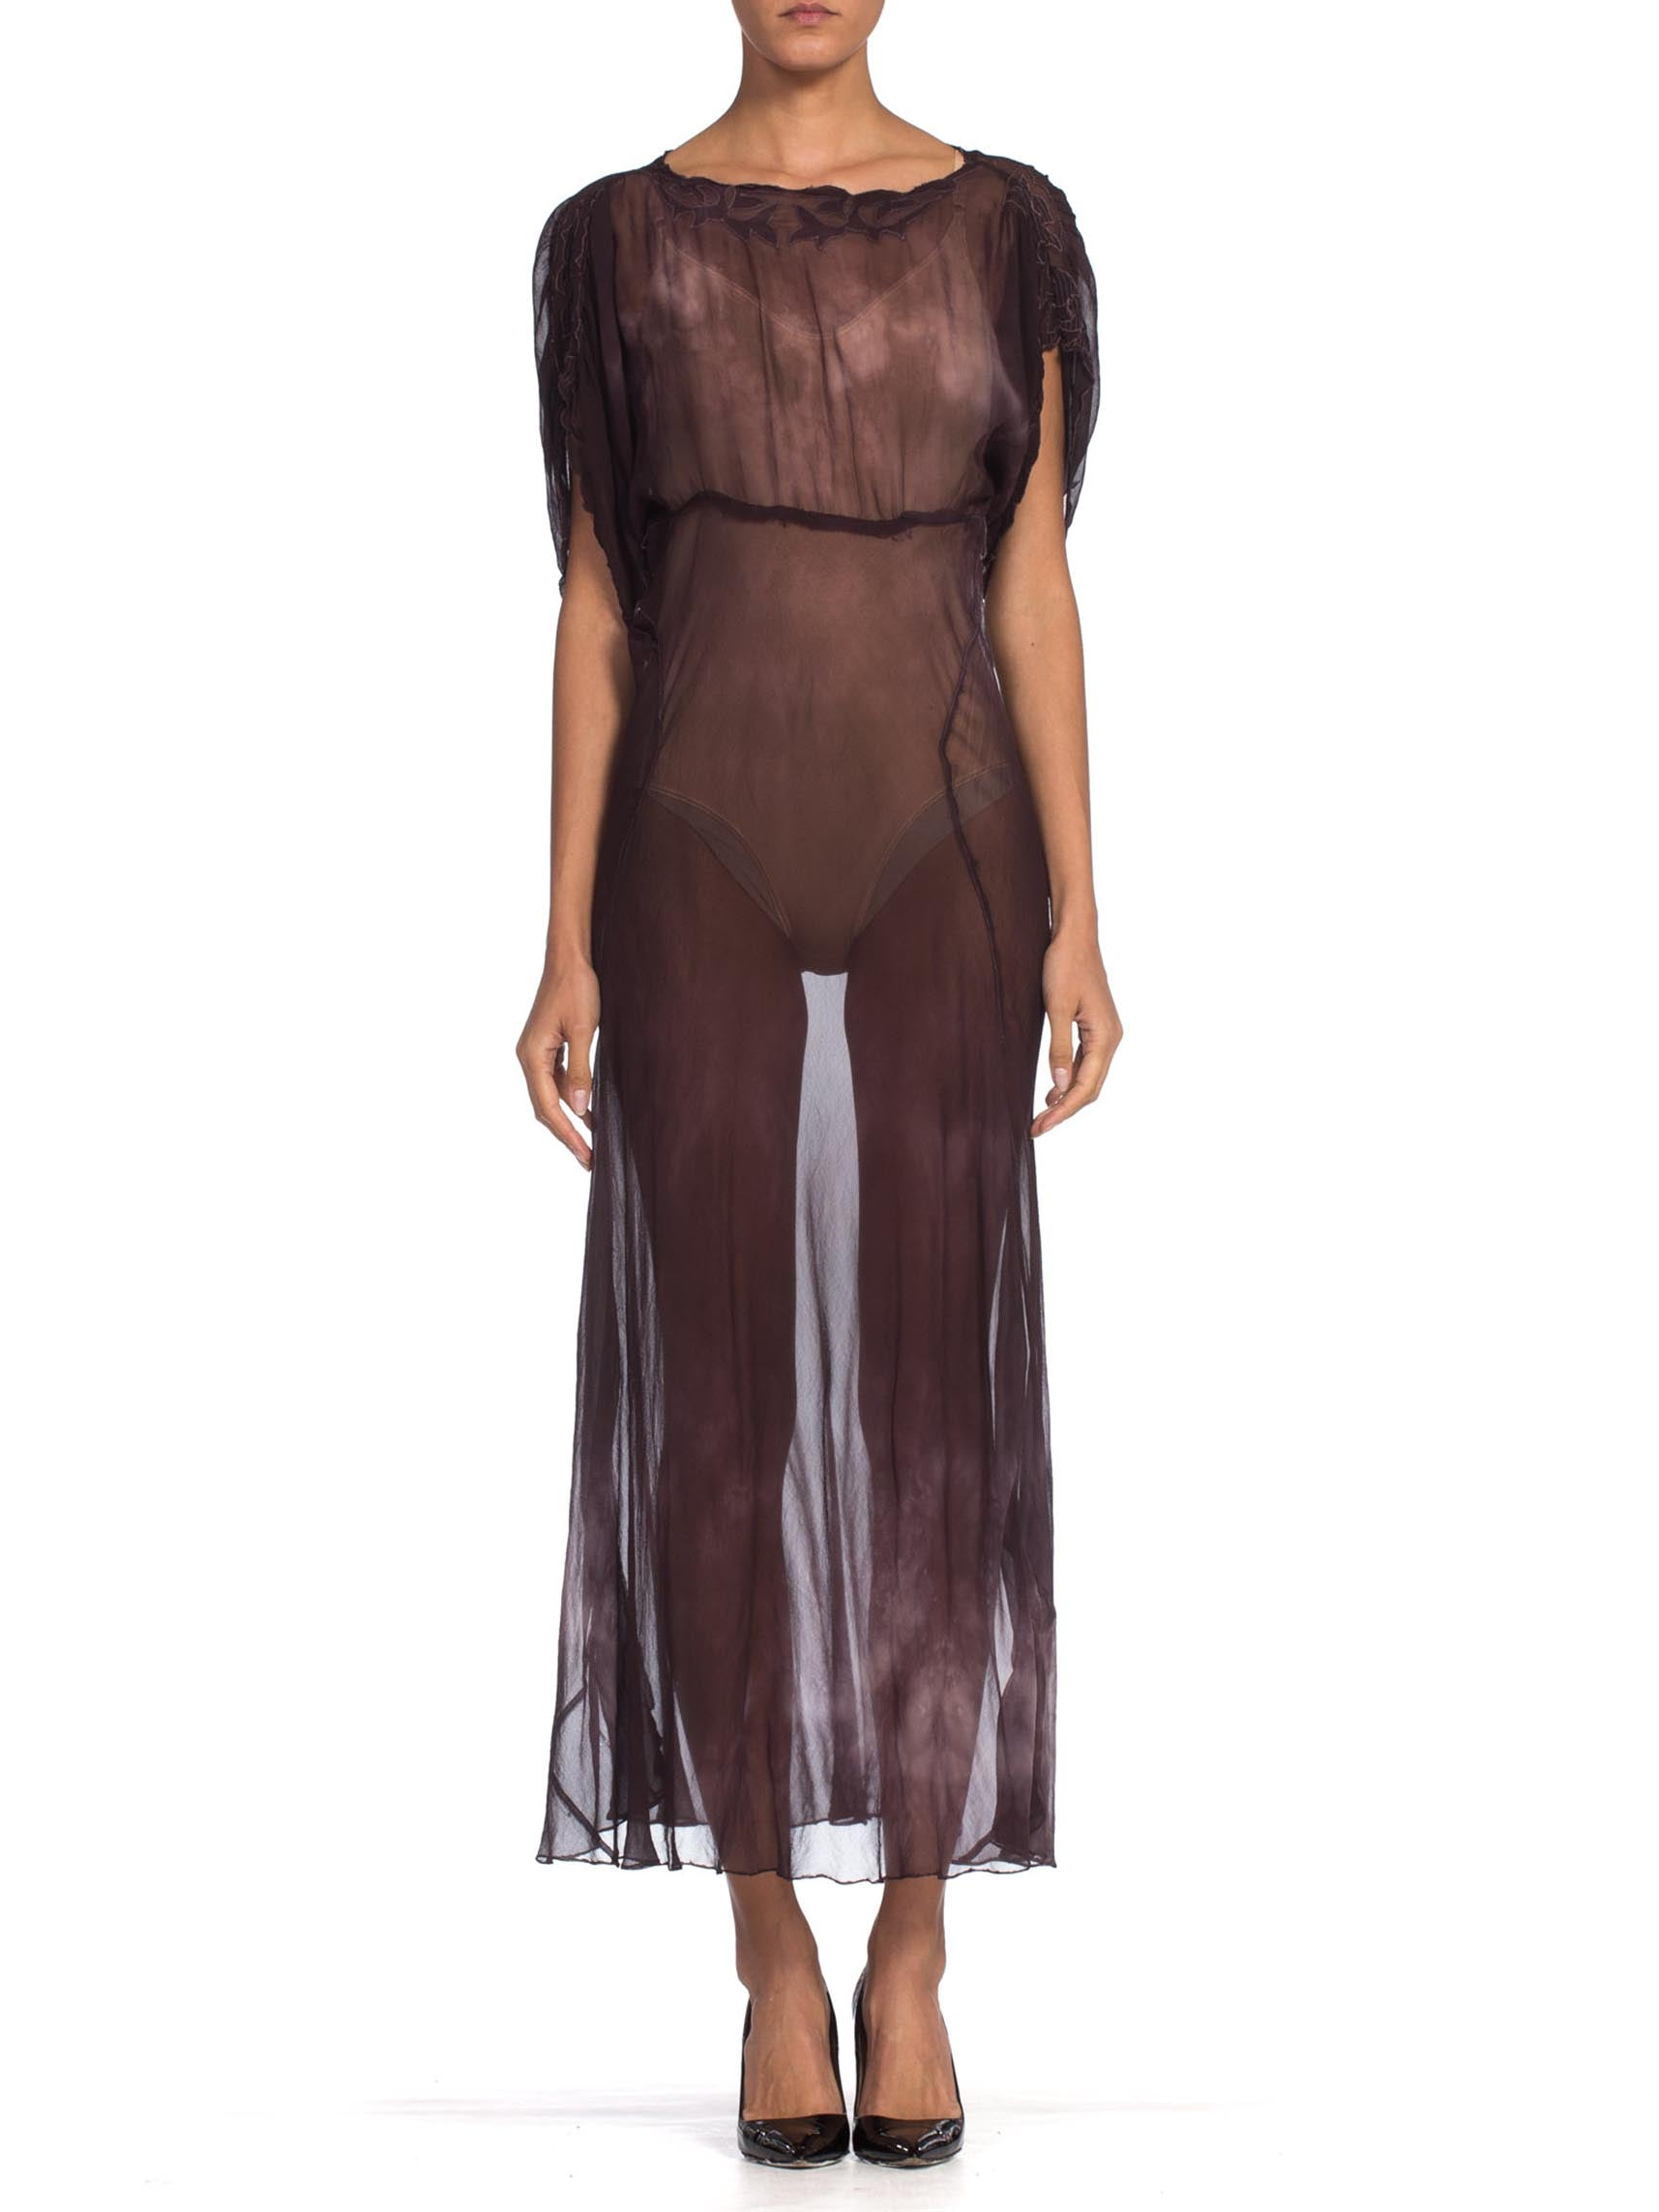 1930s Silk Chiffon Bias Sheer Tie Dye Reworked Dress